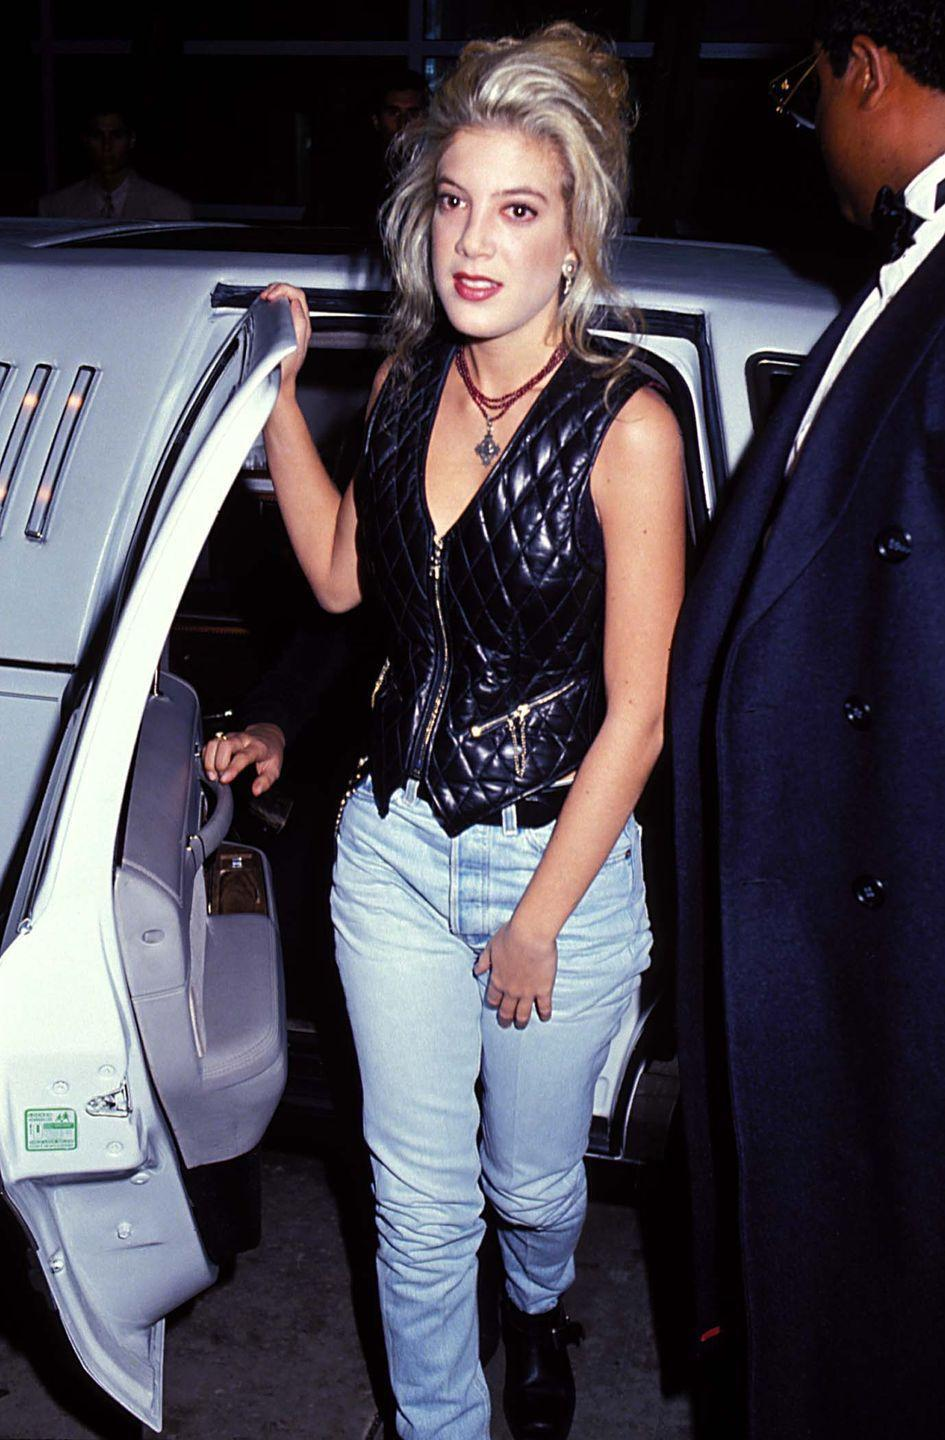 """<p>In 1991, the <em><a href=""""http://www.nytimes.com/1991/02/03/business/all-about-denim-the-appeal-of-blue-now-red-or-green-jeans.html"""" rel=""""nofollow noopener"""" target=""""_blank"""" data-ylk=""""slk:Times"""" class=""""link rapid-noclick-resp"""">Times</a></em> declared that """"sales of blue jeans...have been flagging,"""" but clearly they were still popular with Hollywood actresses like Tori Spelling , who wears an ultra-faded wash with her leather vest.</p>"""